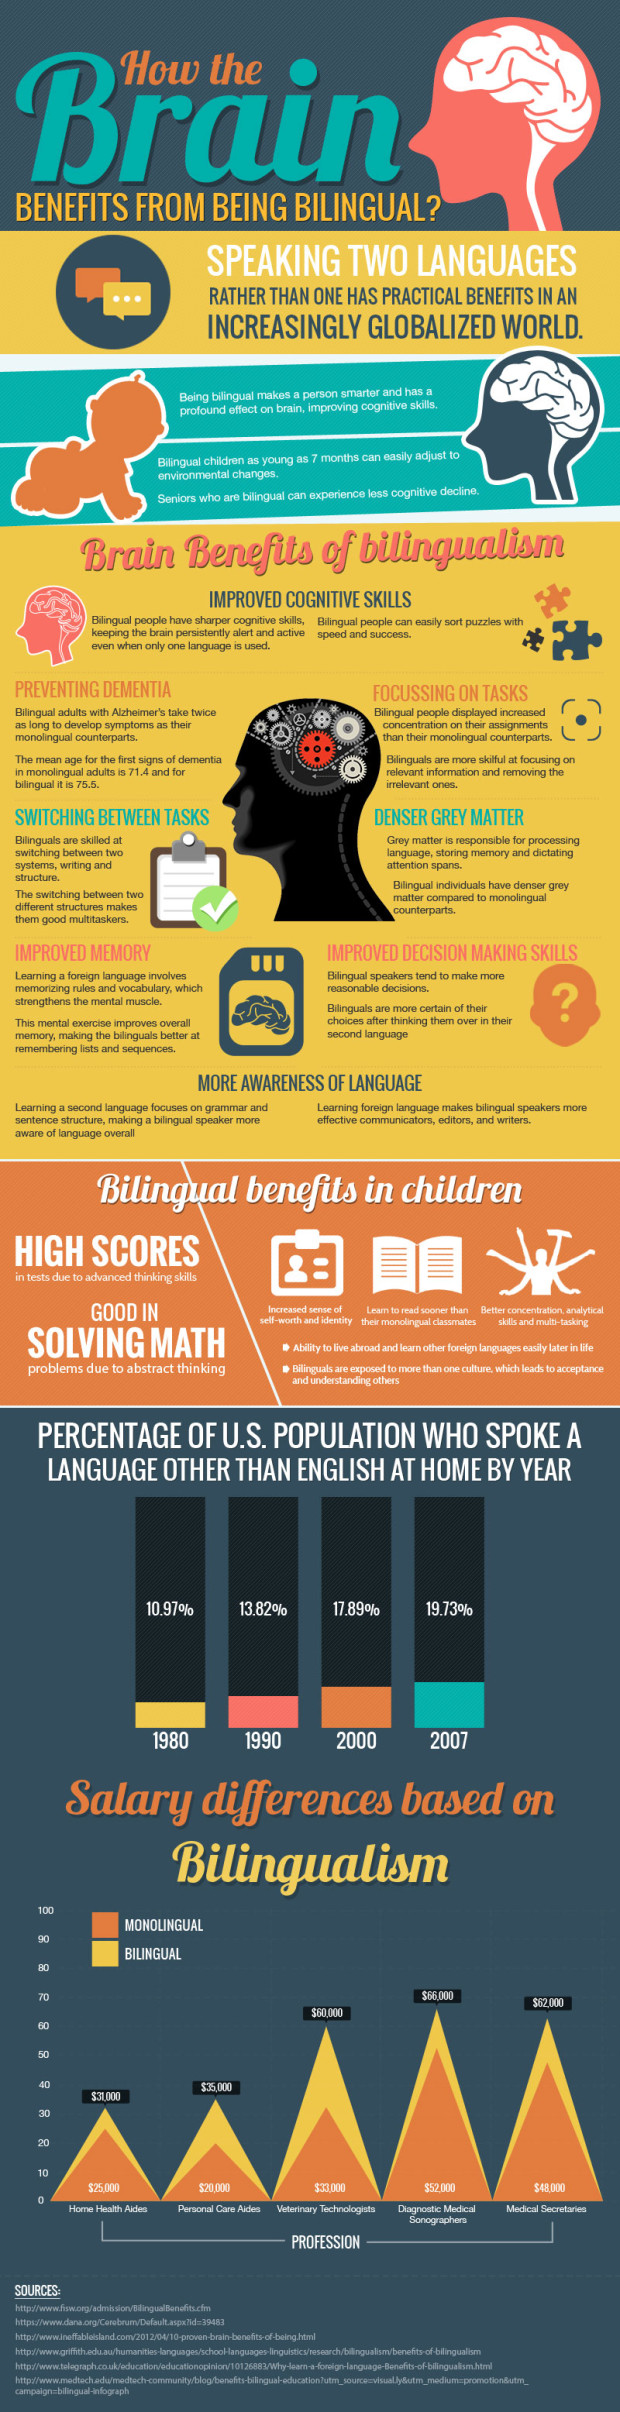 how-the-brain-benefits-from-being-bilingual_52e5871e0b590-620x2412